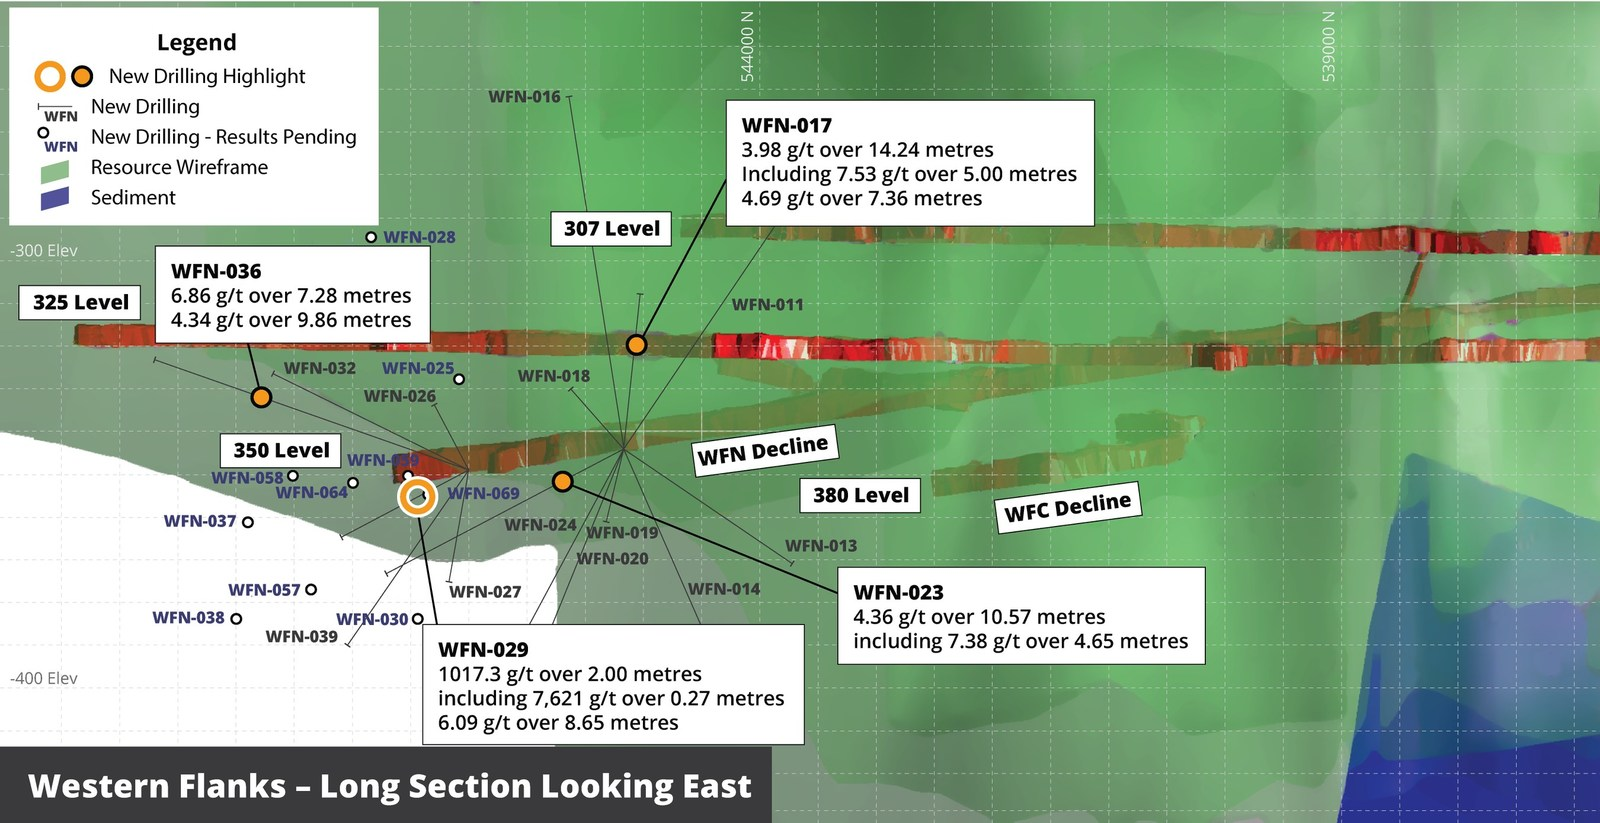 Figure 2 – Western Flanks North Long Section looking East showing current drilling pierce points and selected intersections of the Western Flanks shear